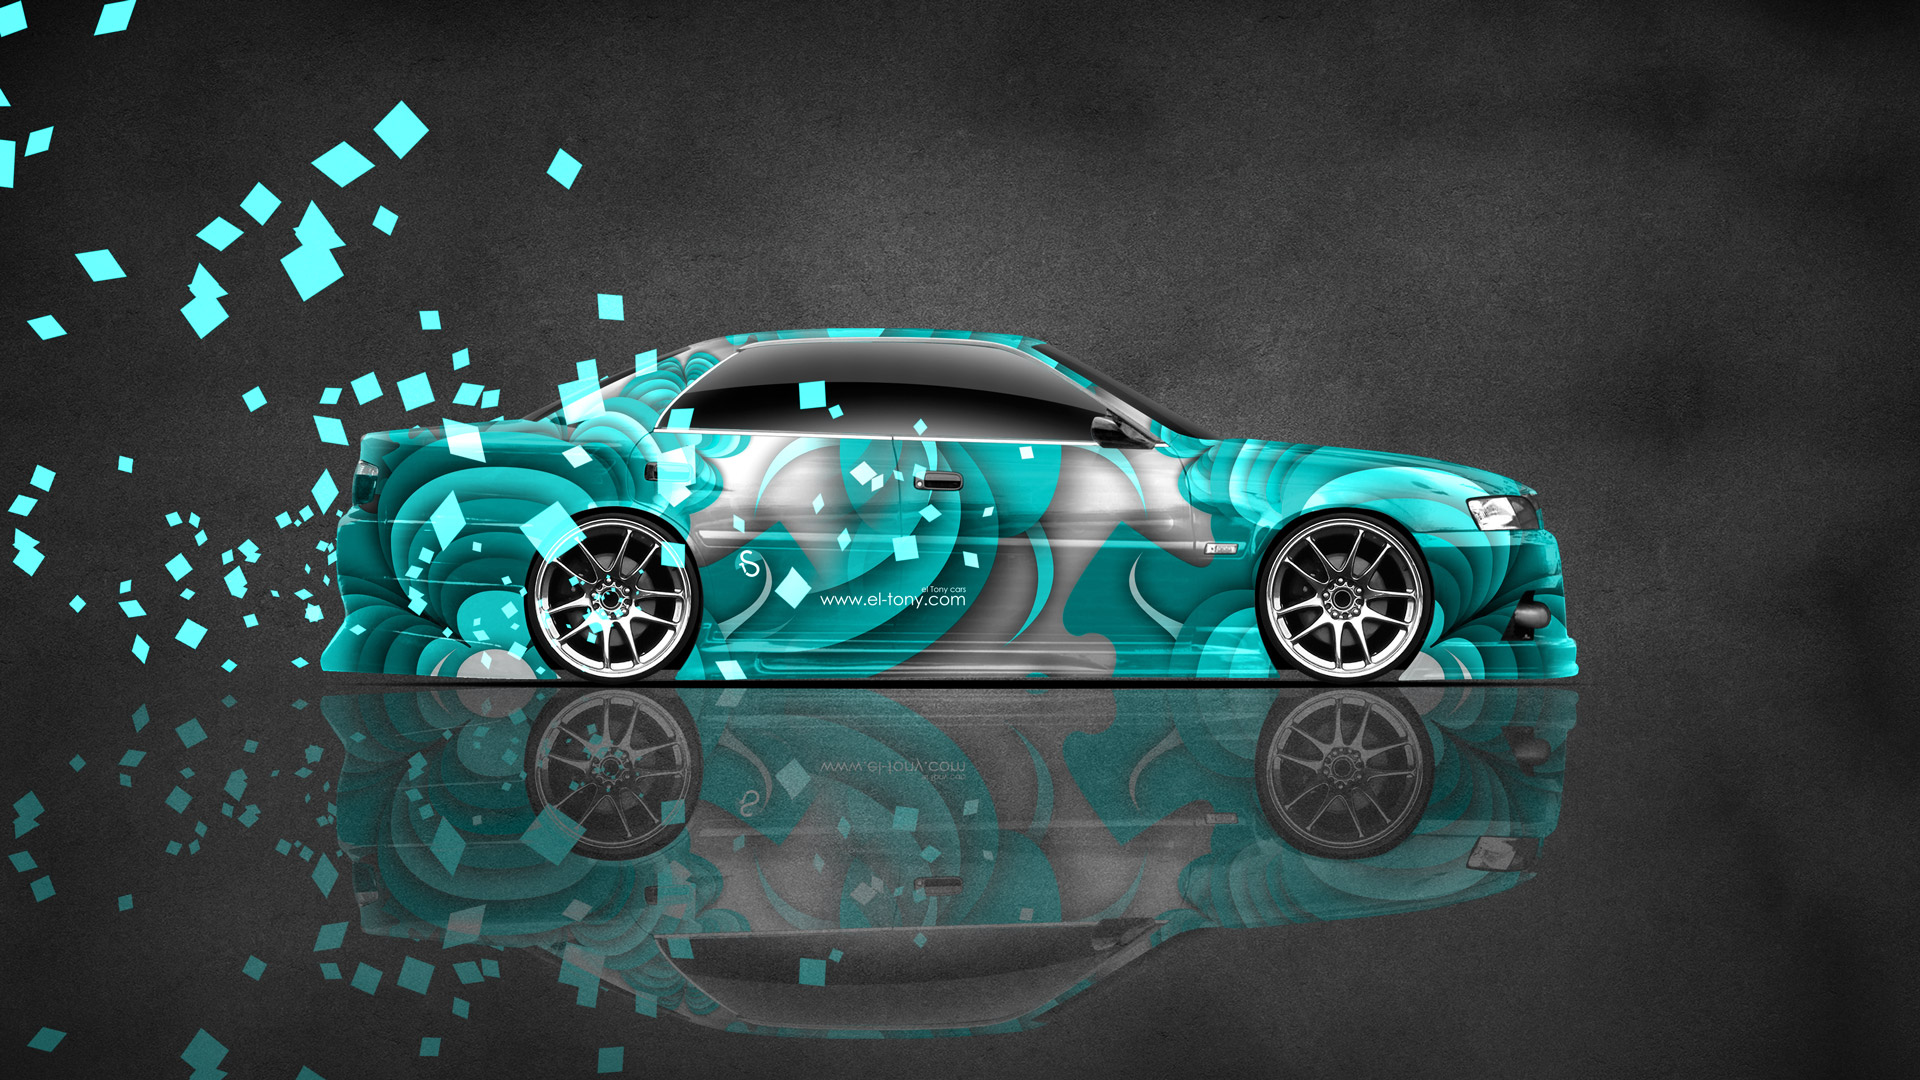 ... Toyota Chaser JZX100 JDM Side Super Abstract Car